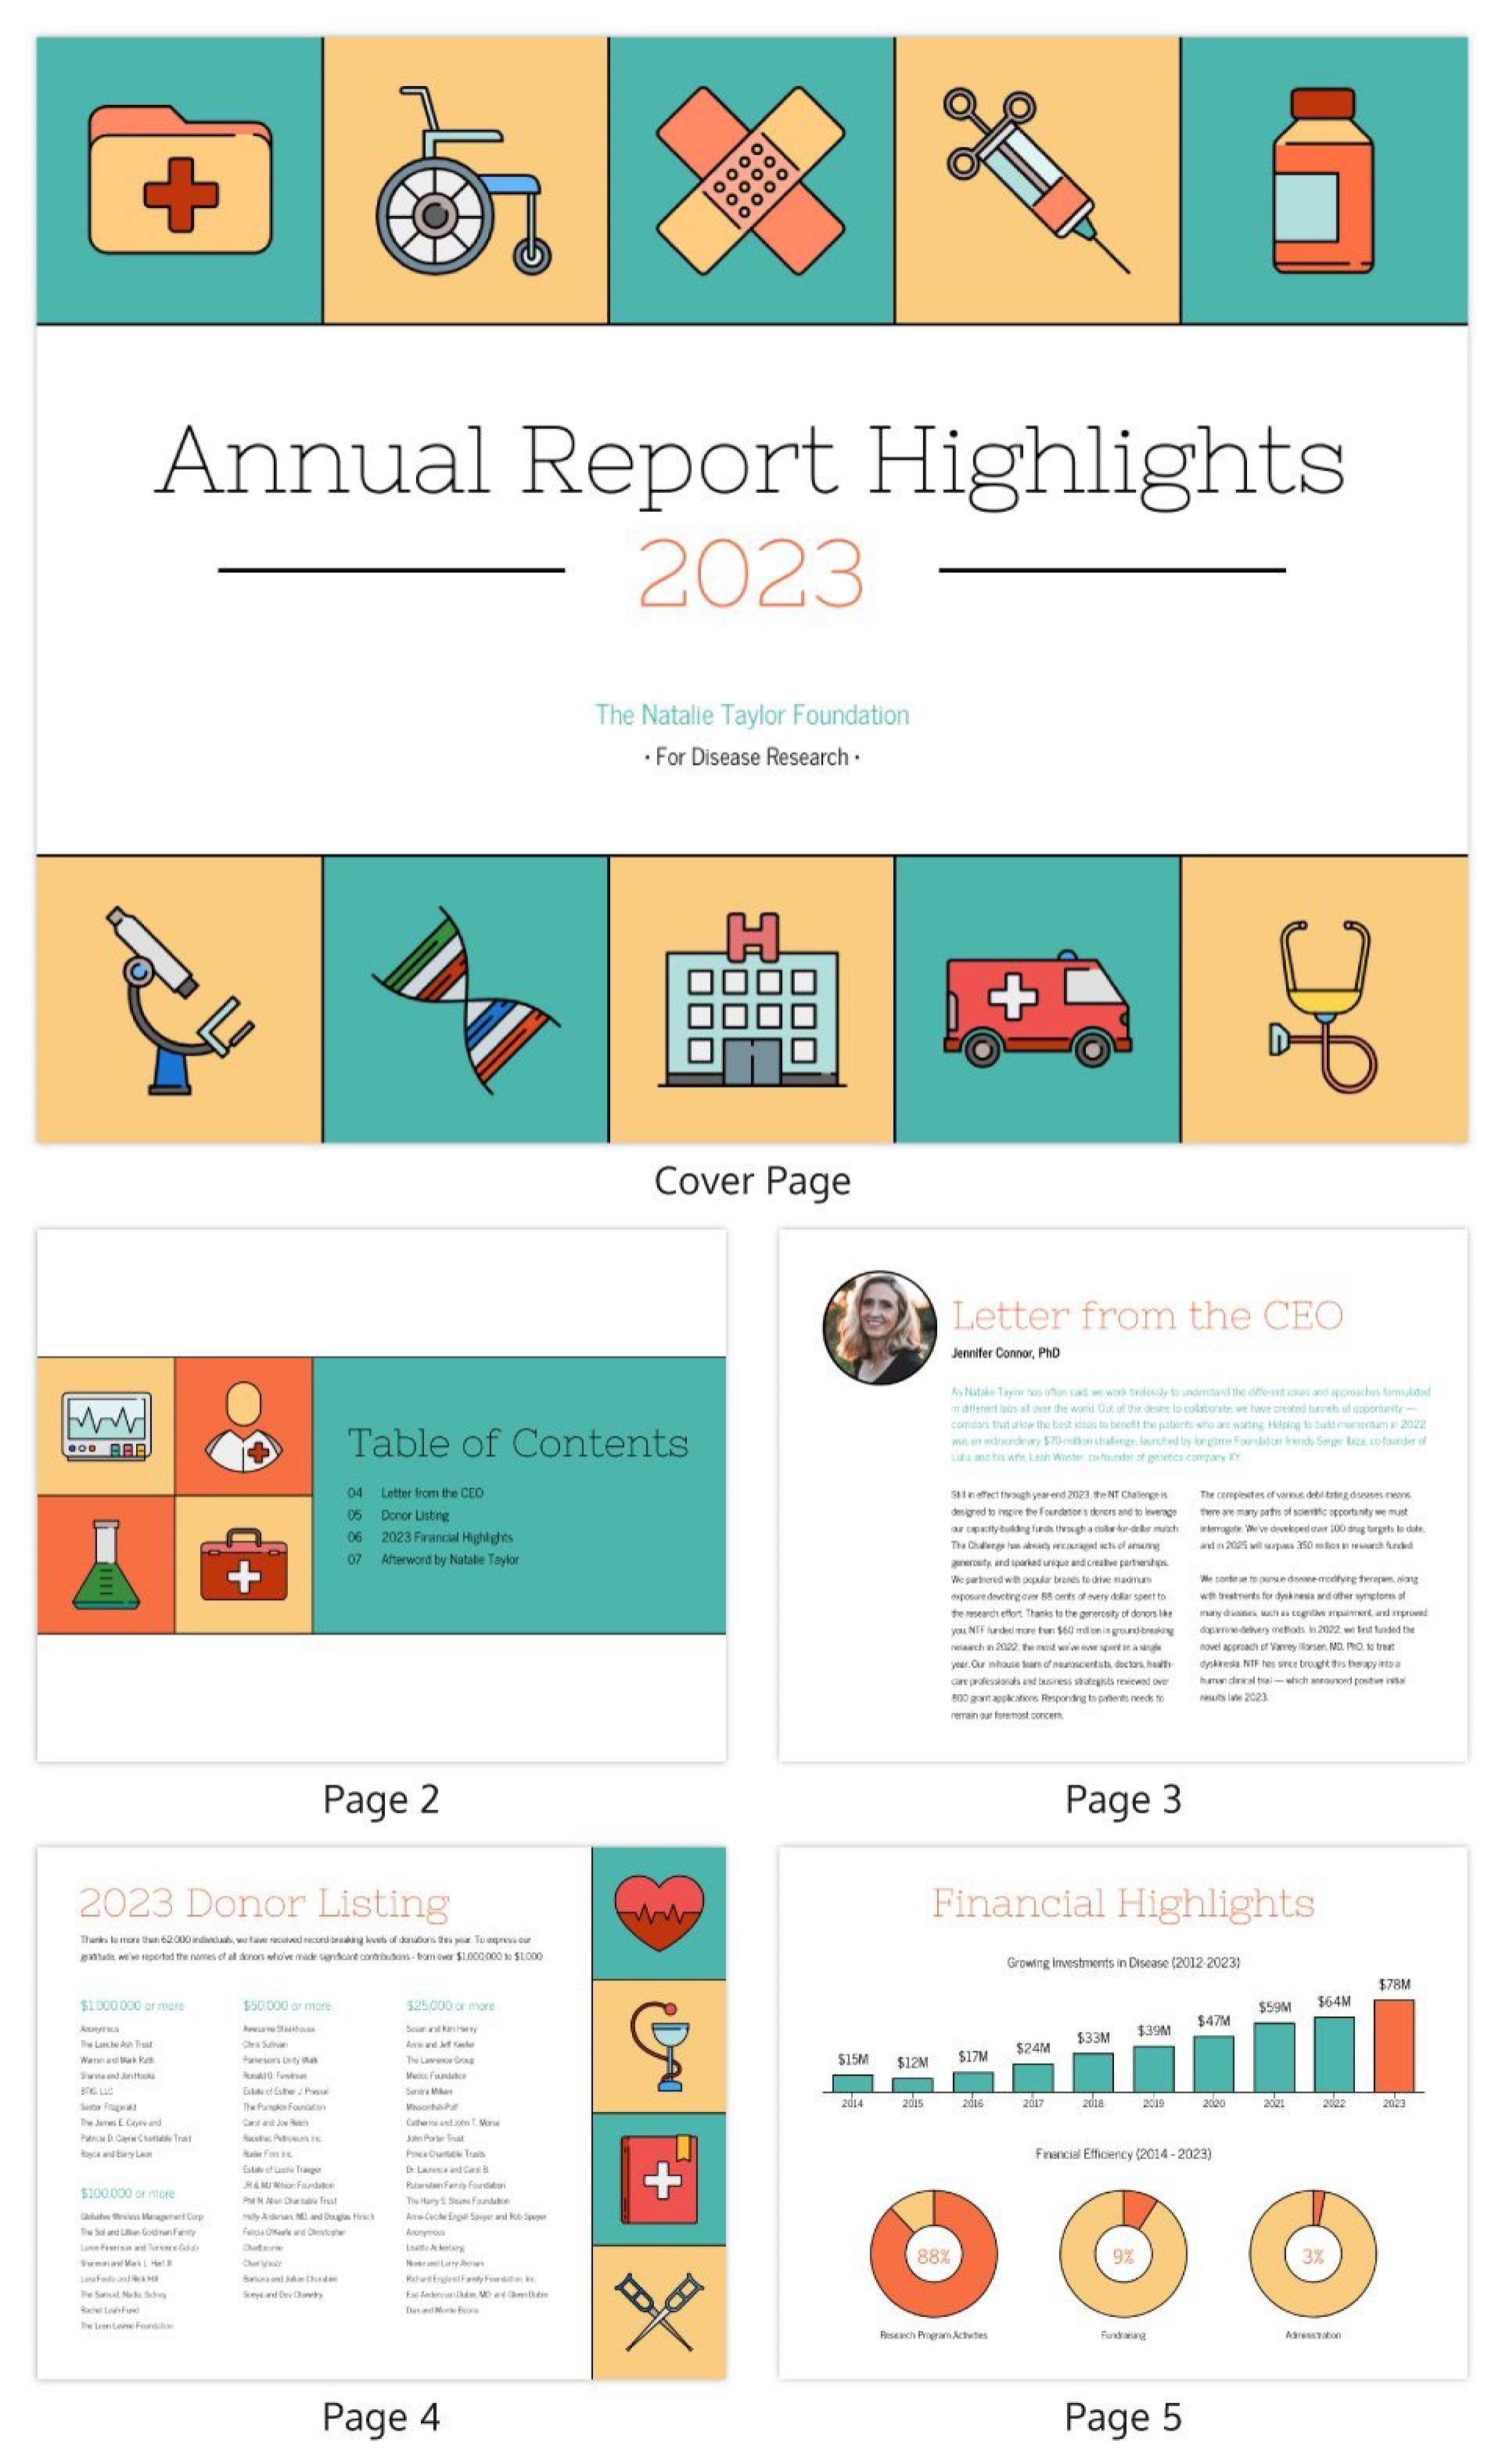 005 Wondrou Non Profit Annual Report Template High Resolution  Not For Small Nonprofit1920